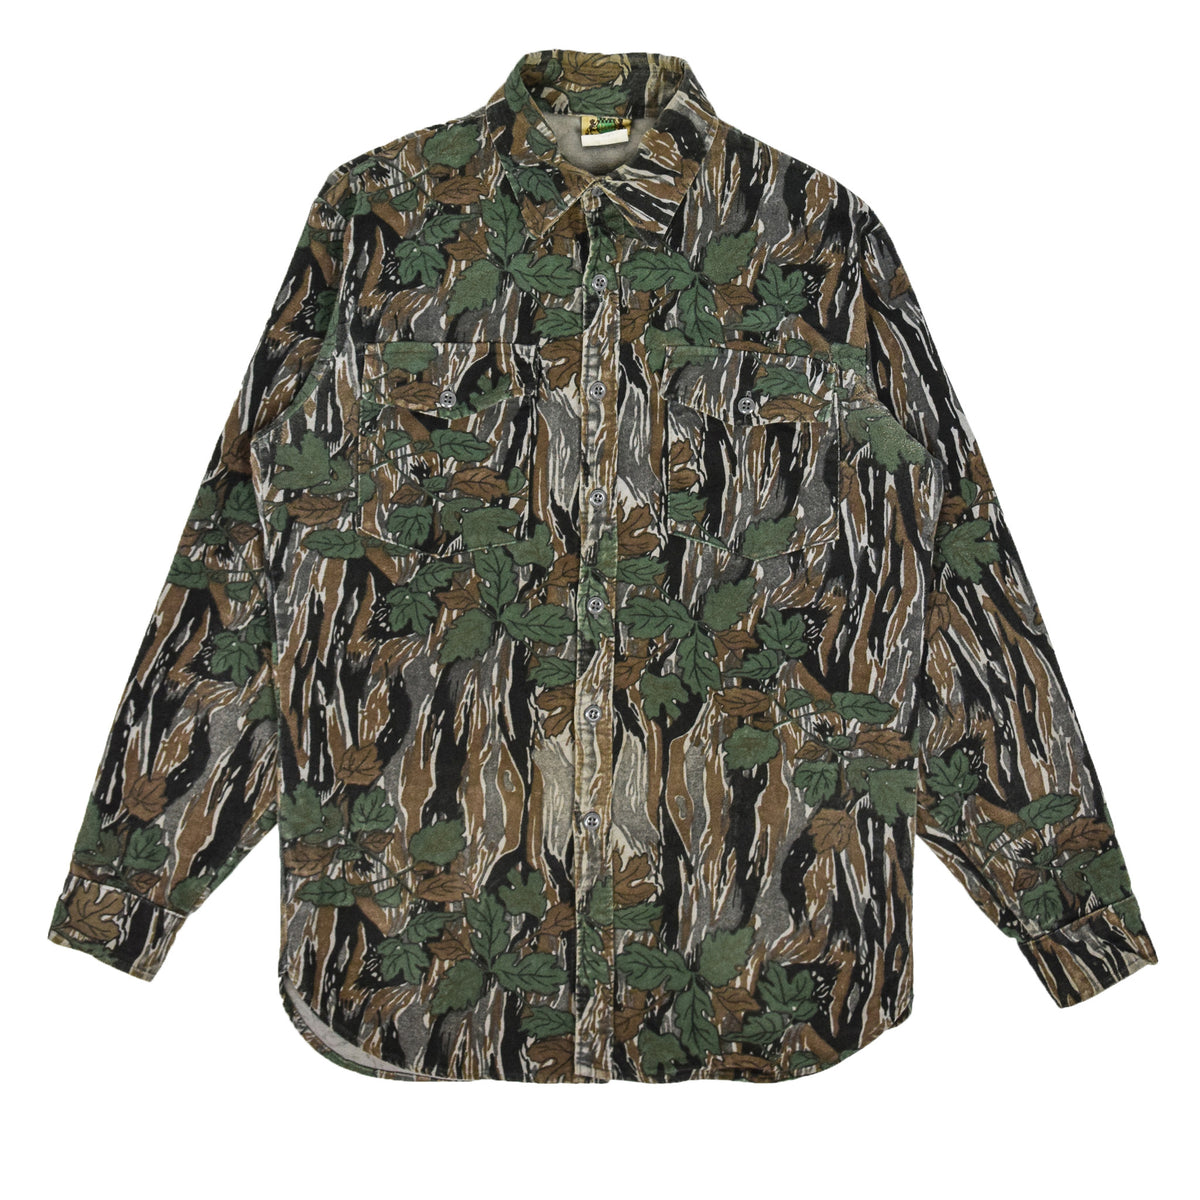 Vintage Ideal Camouflage Hunting Shooting Cotton Long Sleeve Shirt Made in USA M front